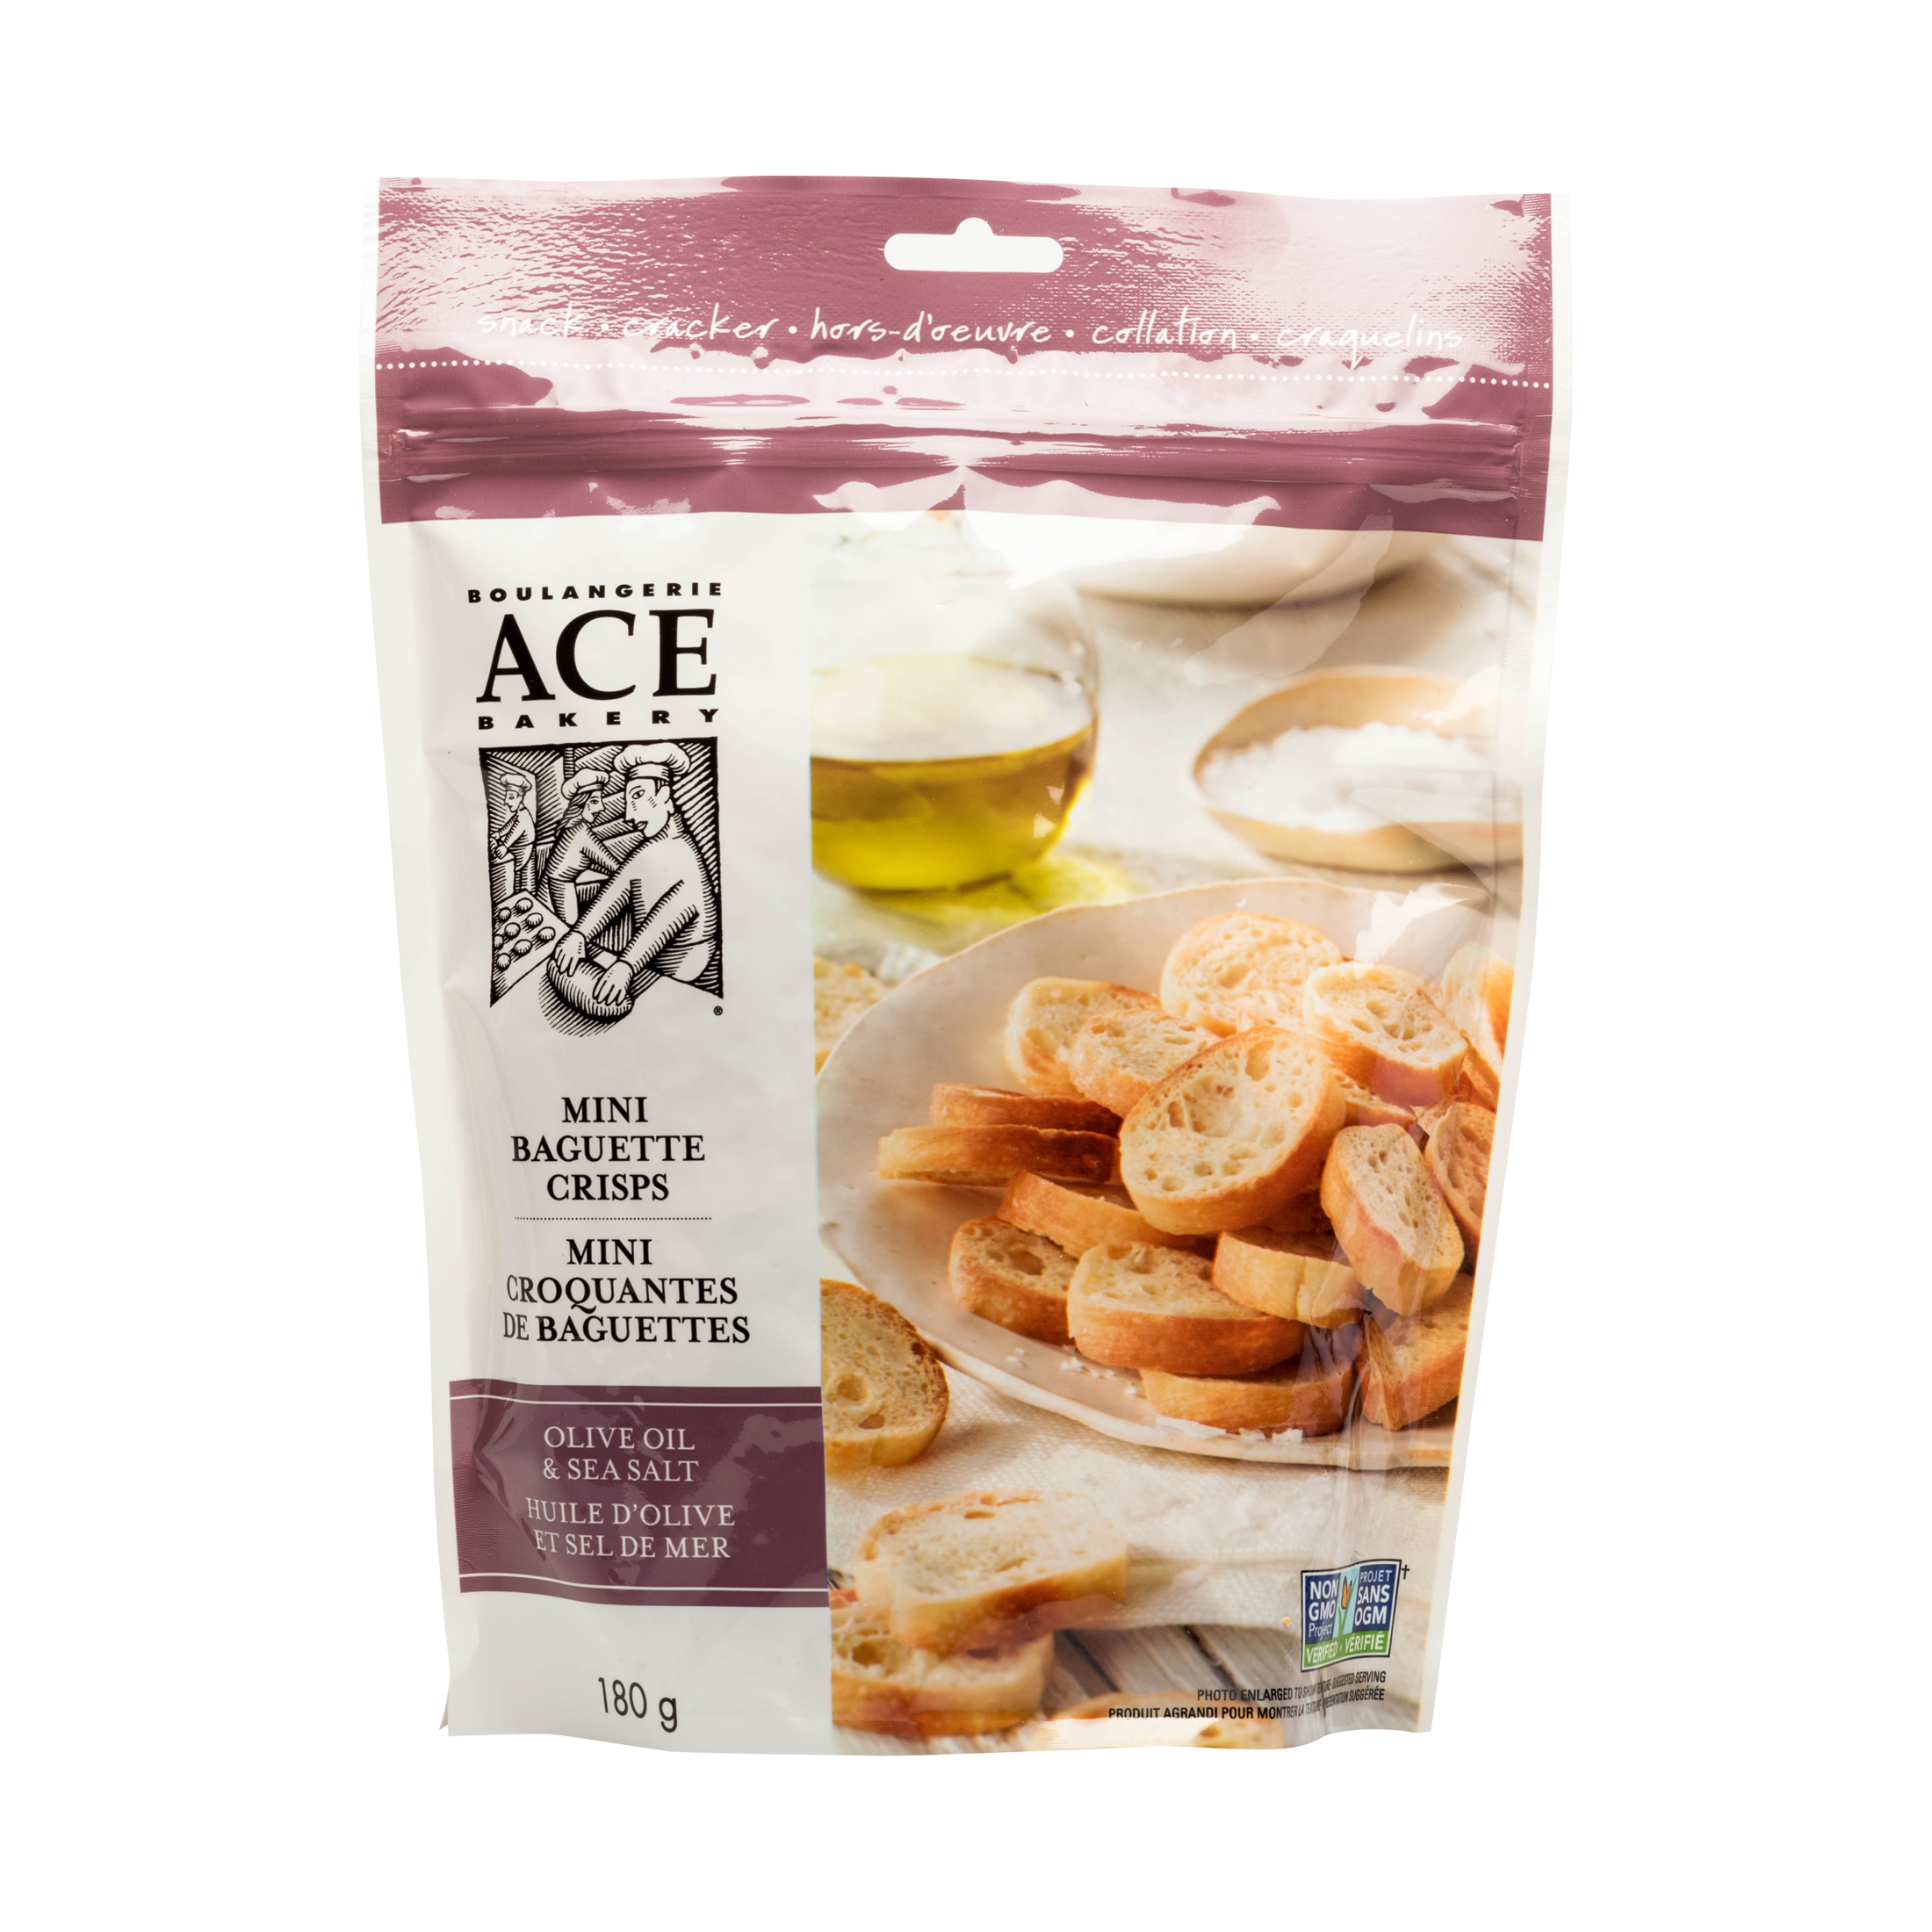 OLIVE OIL & SEA SALT MINI BAGUETTE CRISPS